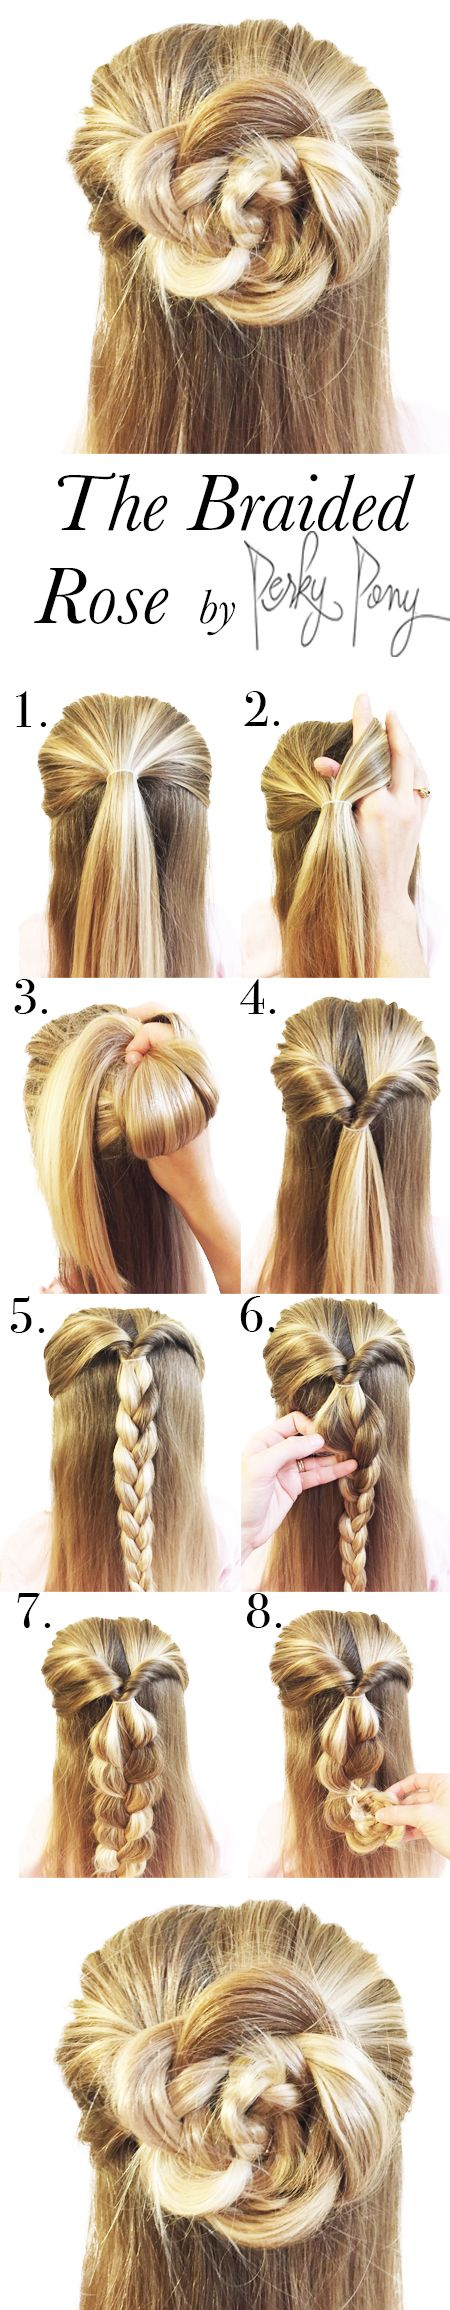 What An Awesome And Unique Hair Style The Braided Rose Looks Way More Complicated Then It Is And All You Have To Do Long Hair Styles Hair Styles Hair Designs